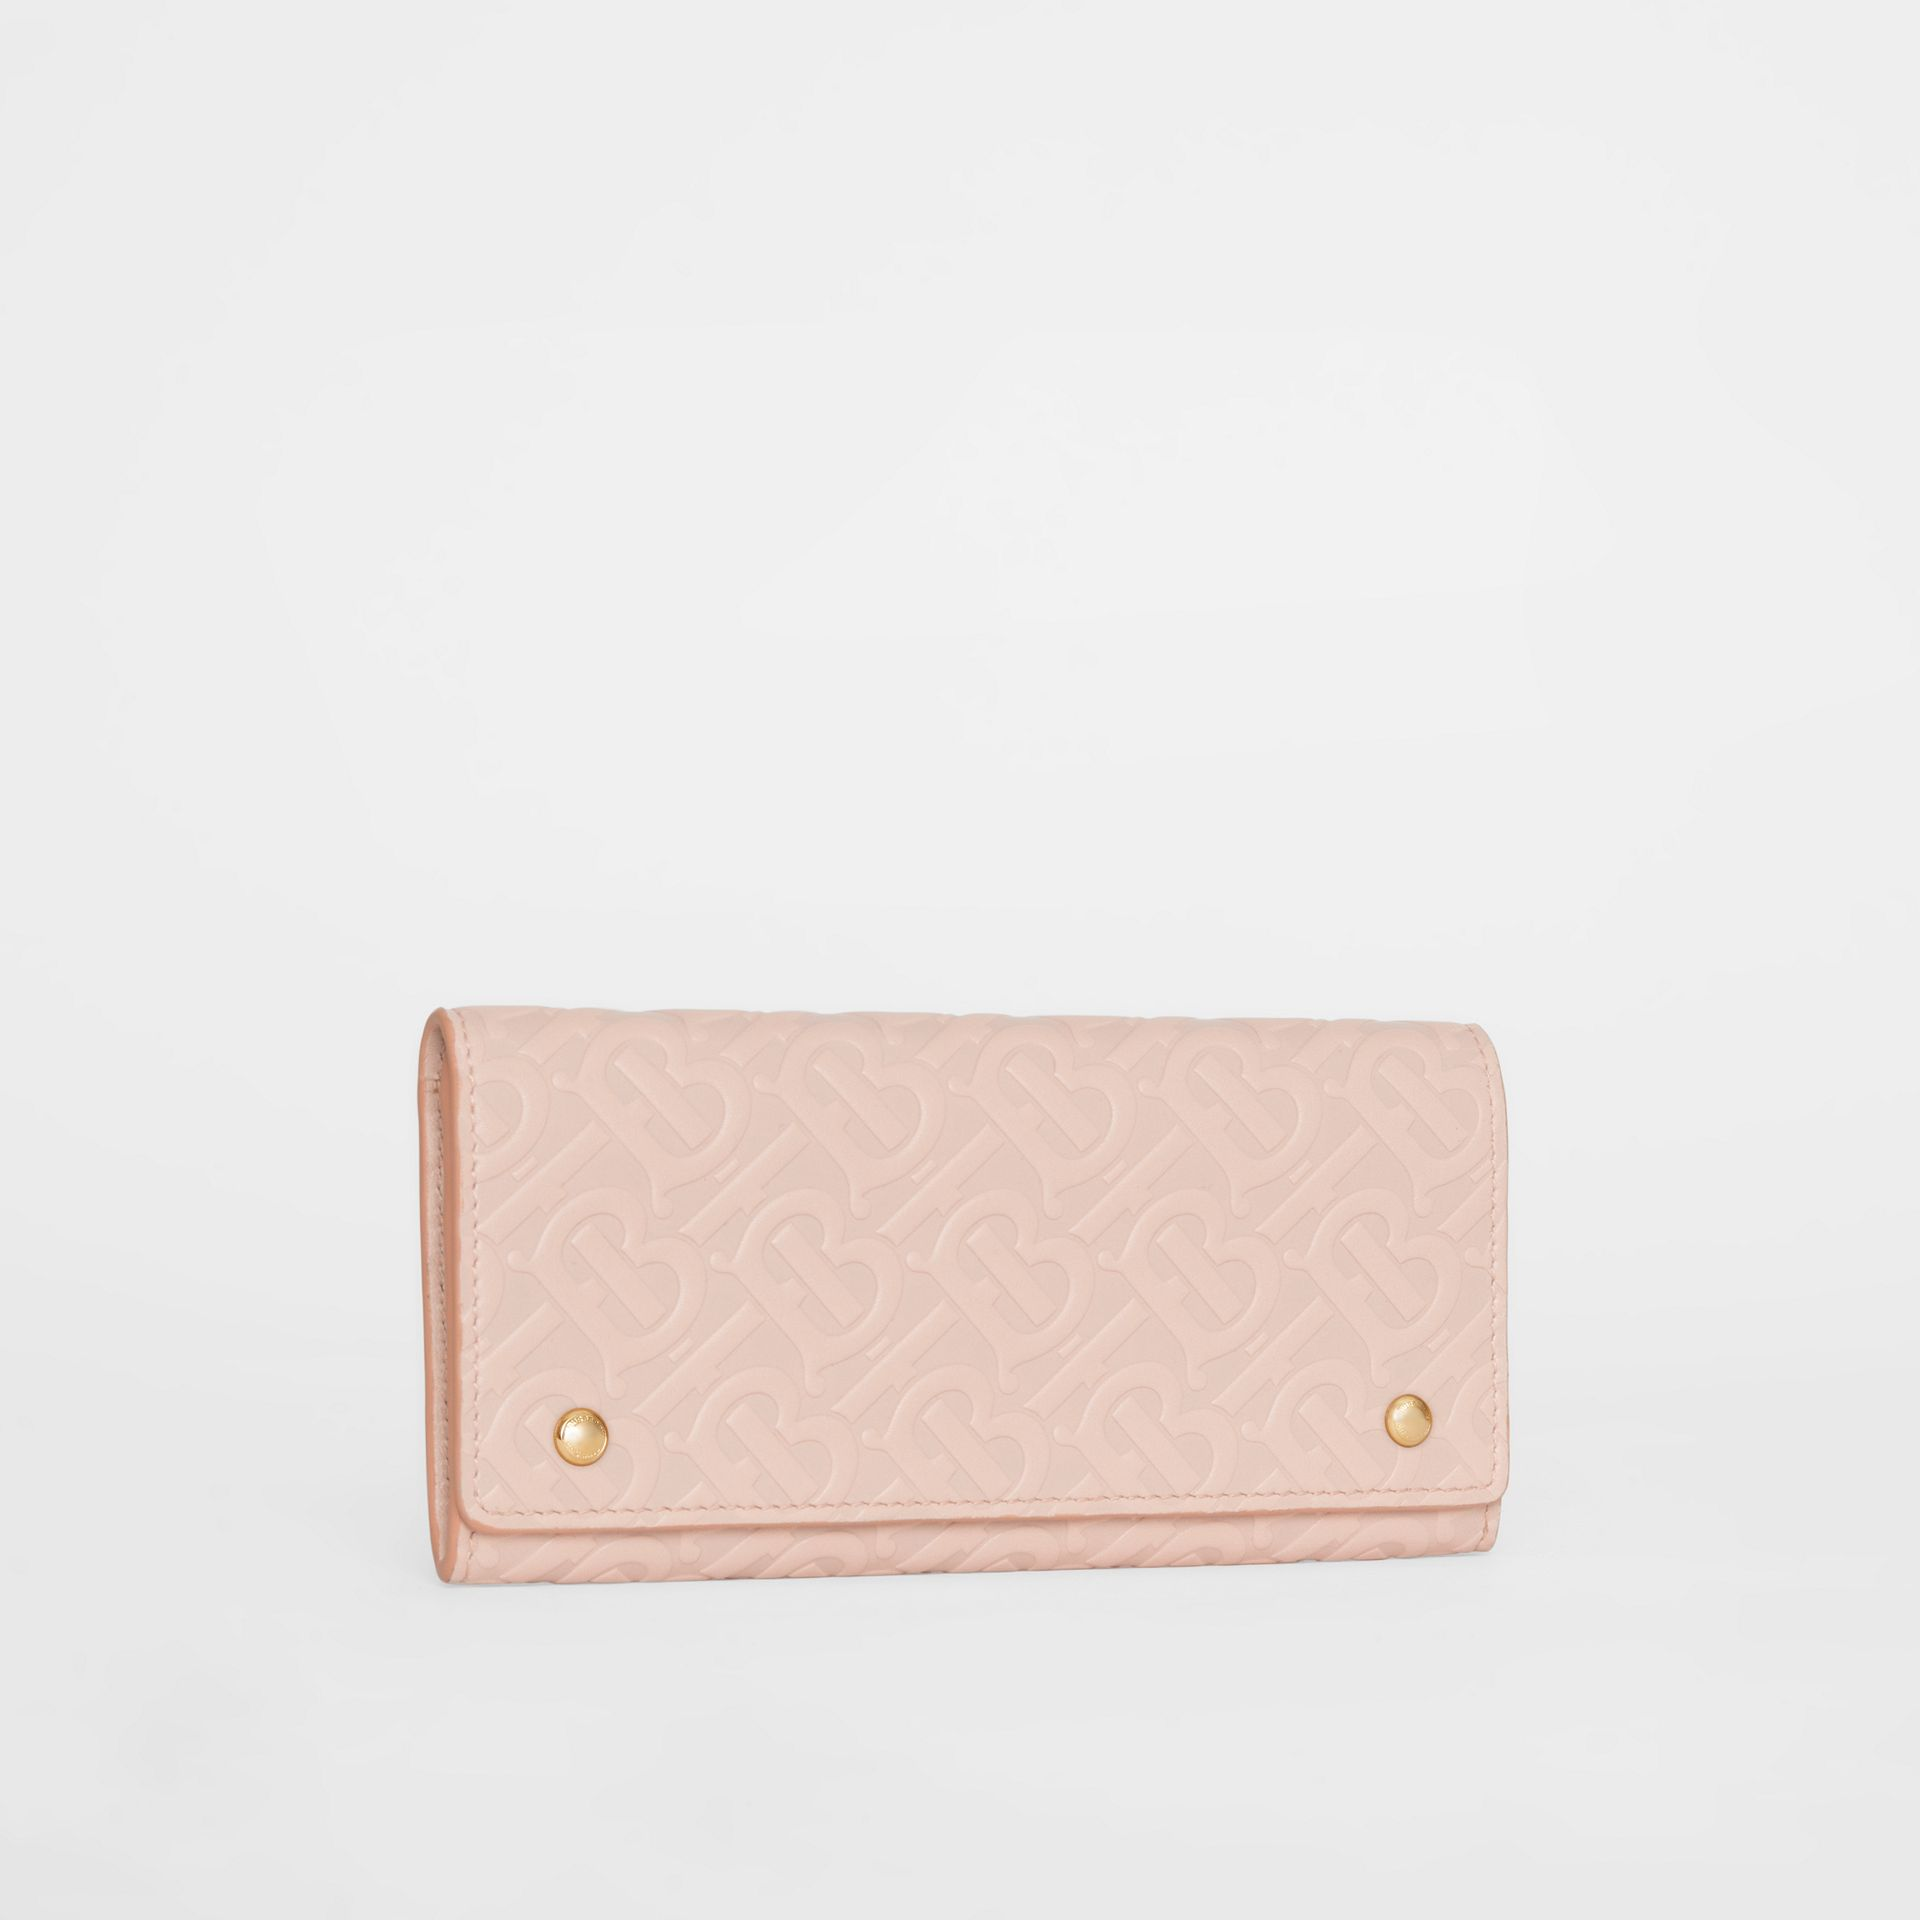 Monogram Leather Continental Wallet in Rose Beige - Women | Burberry United Kingdom - gallery image 3